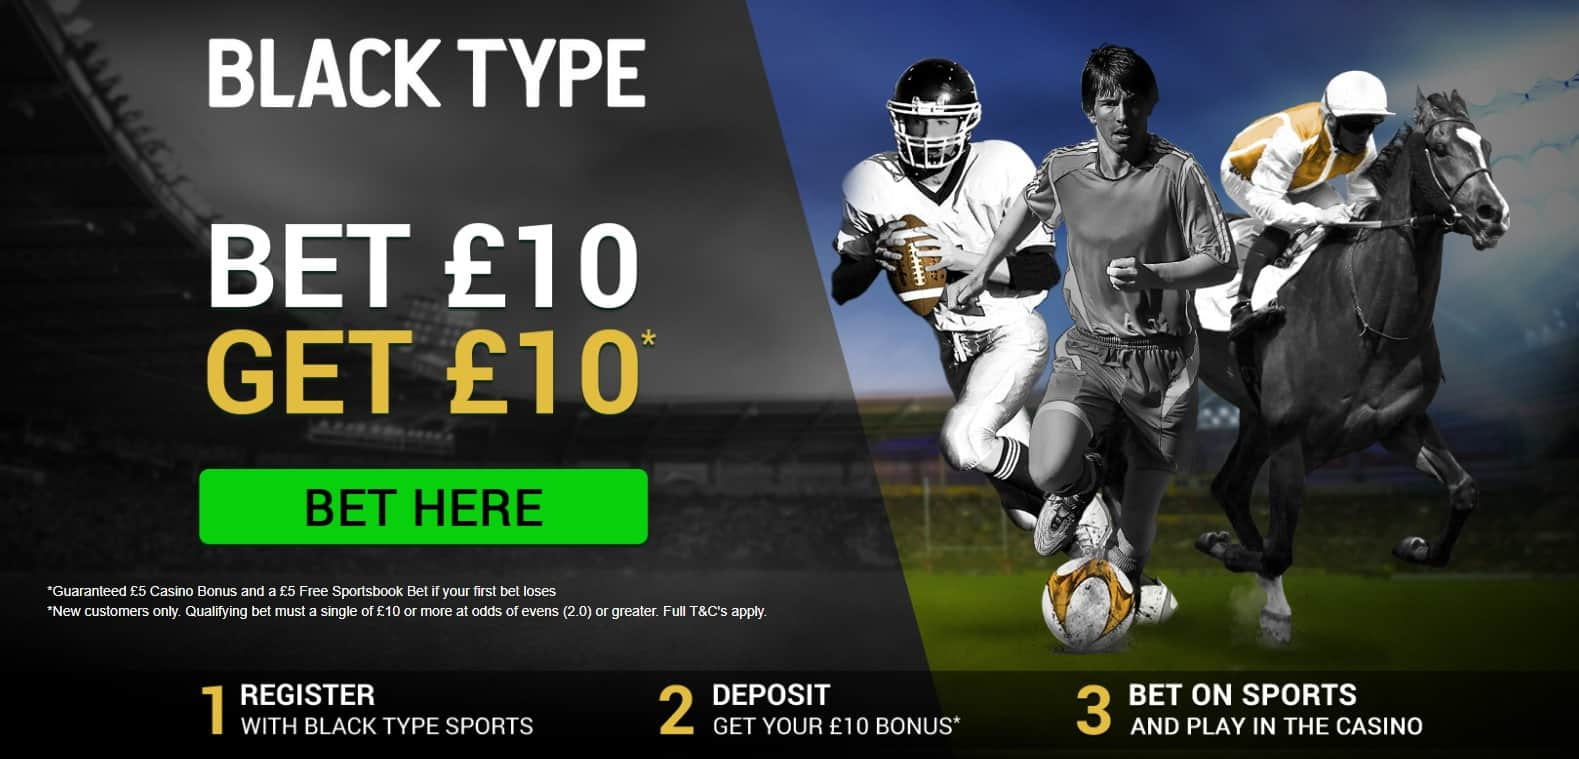 Black Type Football Betting Welcome Offer Bet £10 Get £10